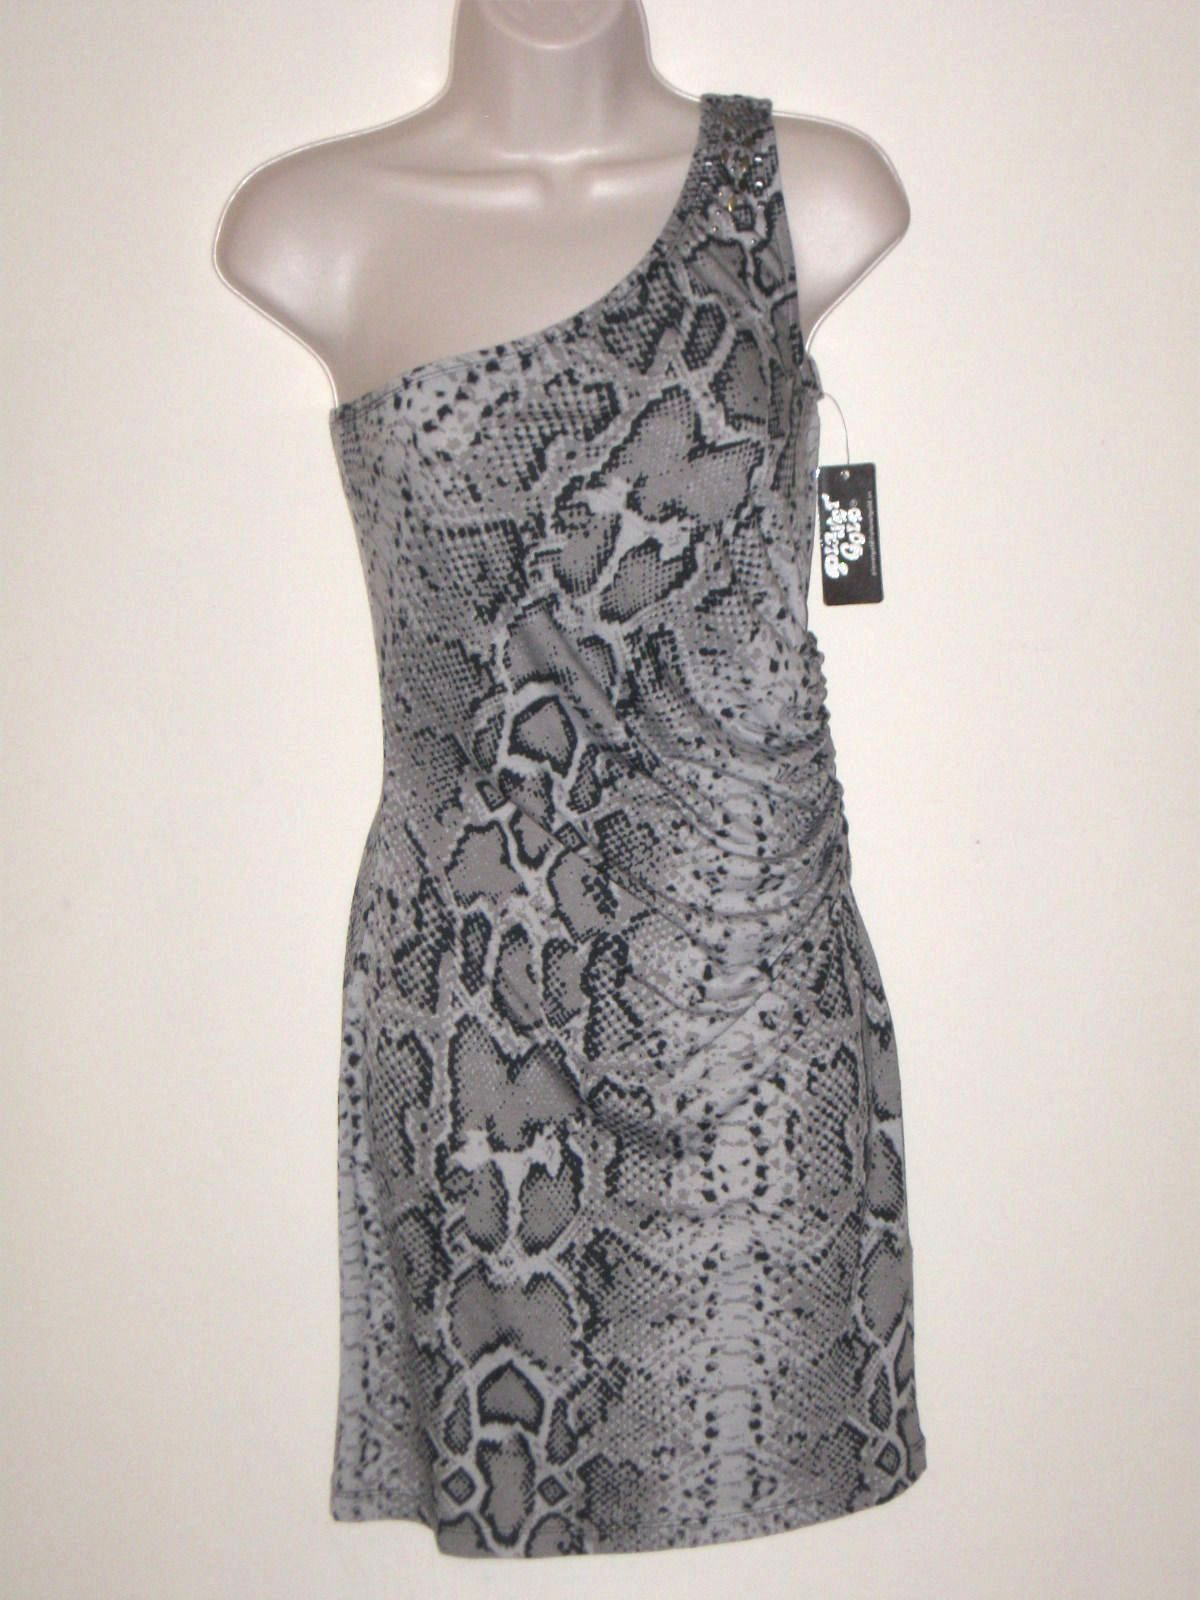 PLANET GOLD One-Shoulder Snake Print Gray Mini Summer Casual Dress Sz S (M*)